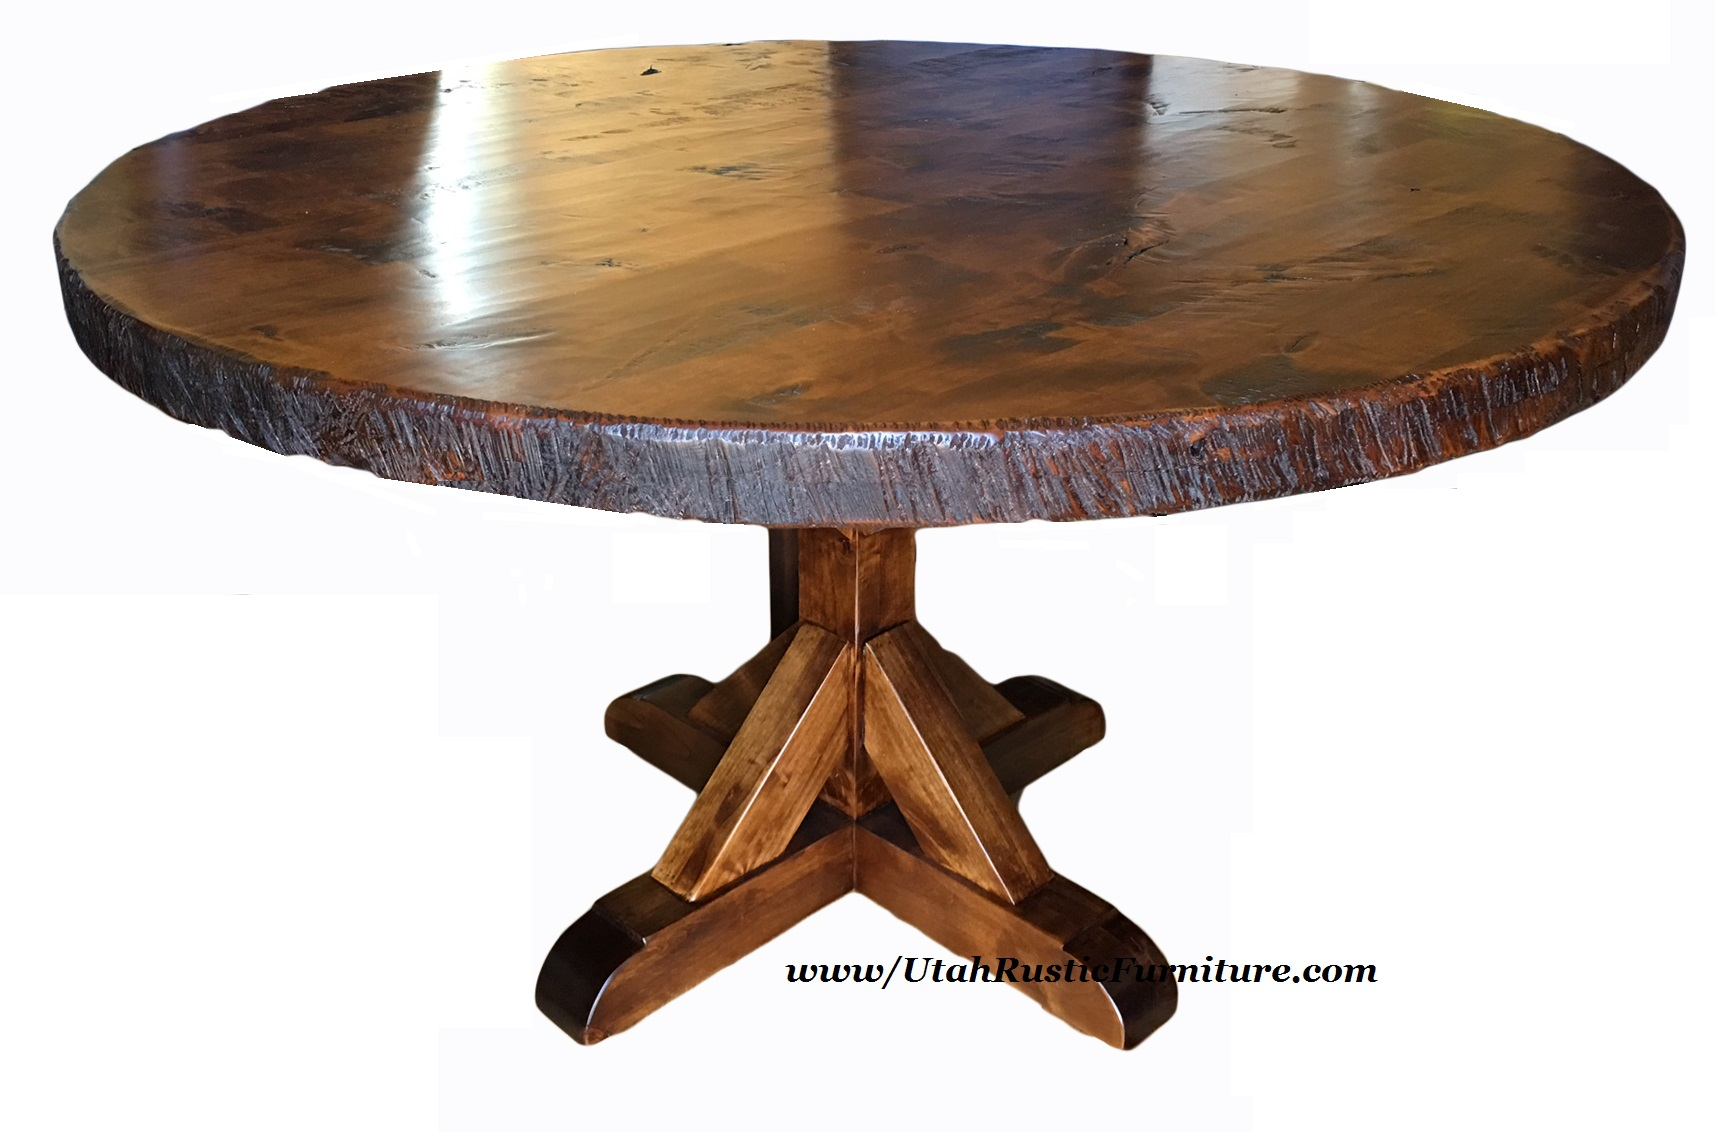 Rustic Round Dining Room Table bradley's furniture etc. - utah rustic dining table sets